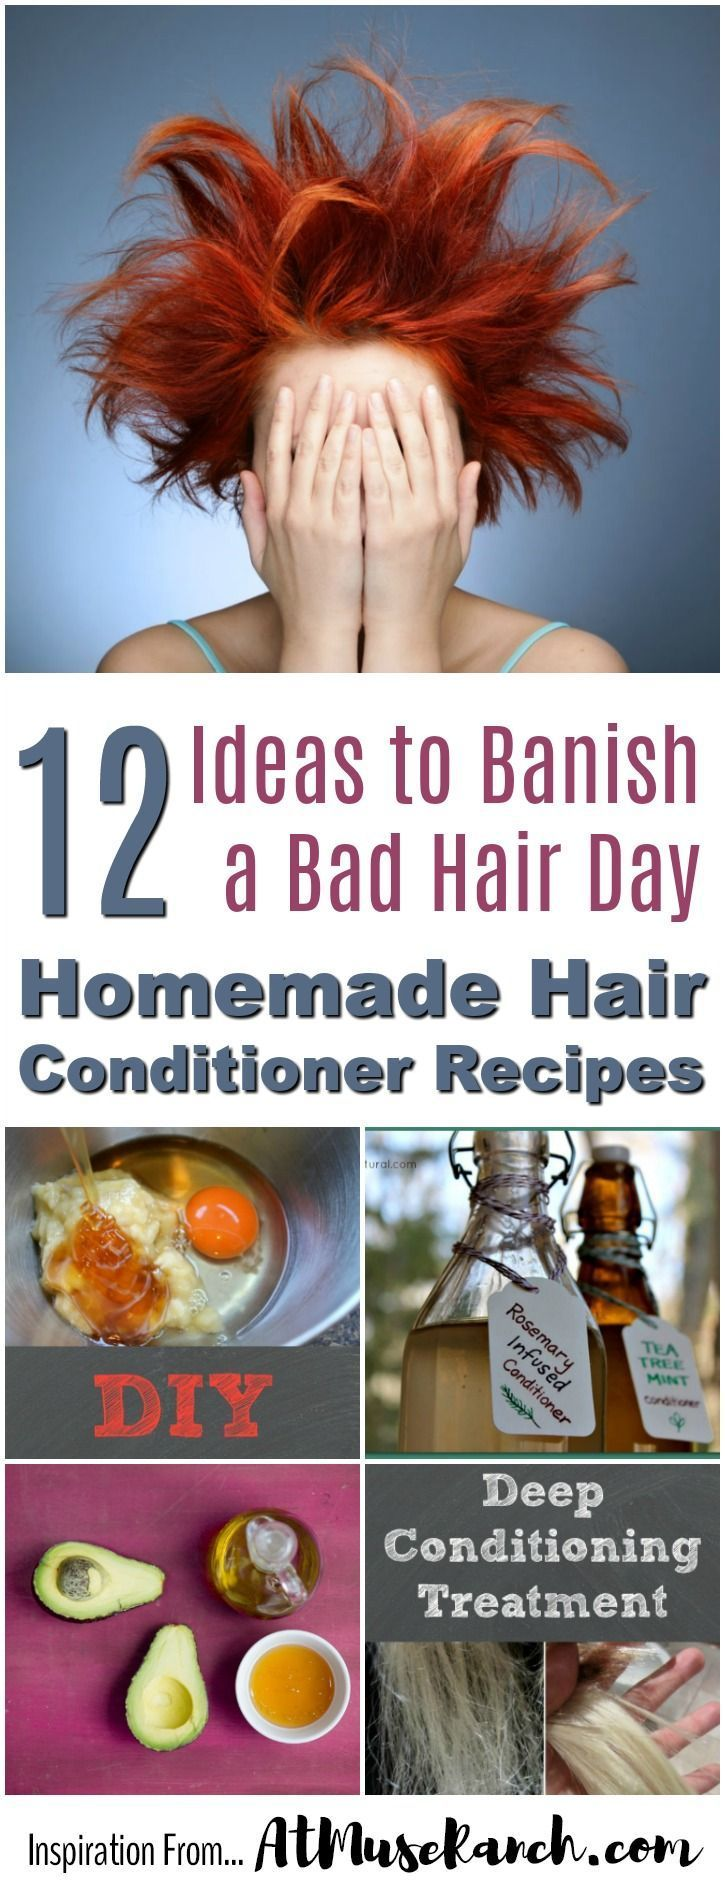 Homemade Hair Conditioner Recipes | 12 Ideas to Banish a Bad Hair Day - Having a bad hair day? Maybe a natural hair product like one of these homemade hair conditioner recipes is just with the stylist's ordered…